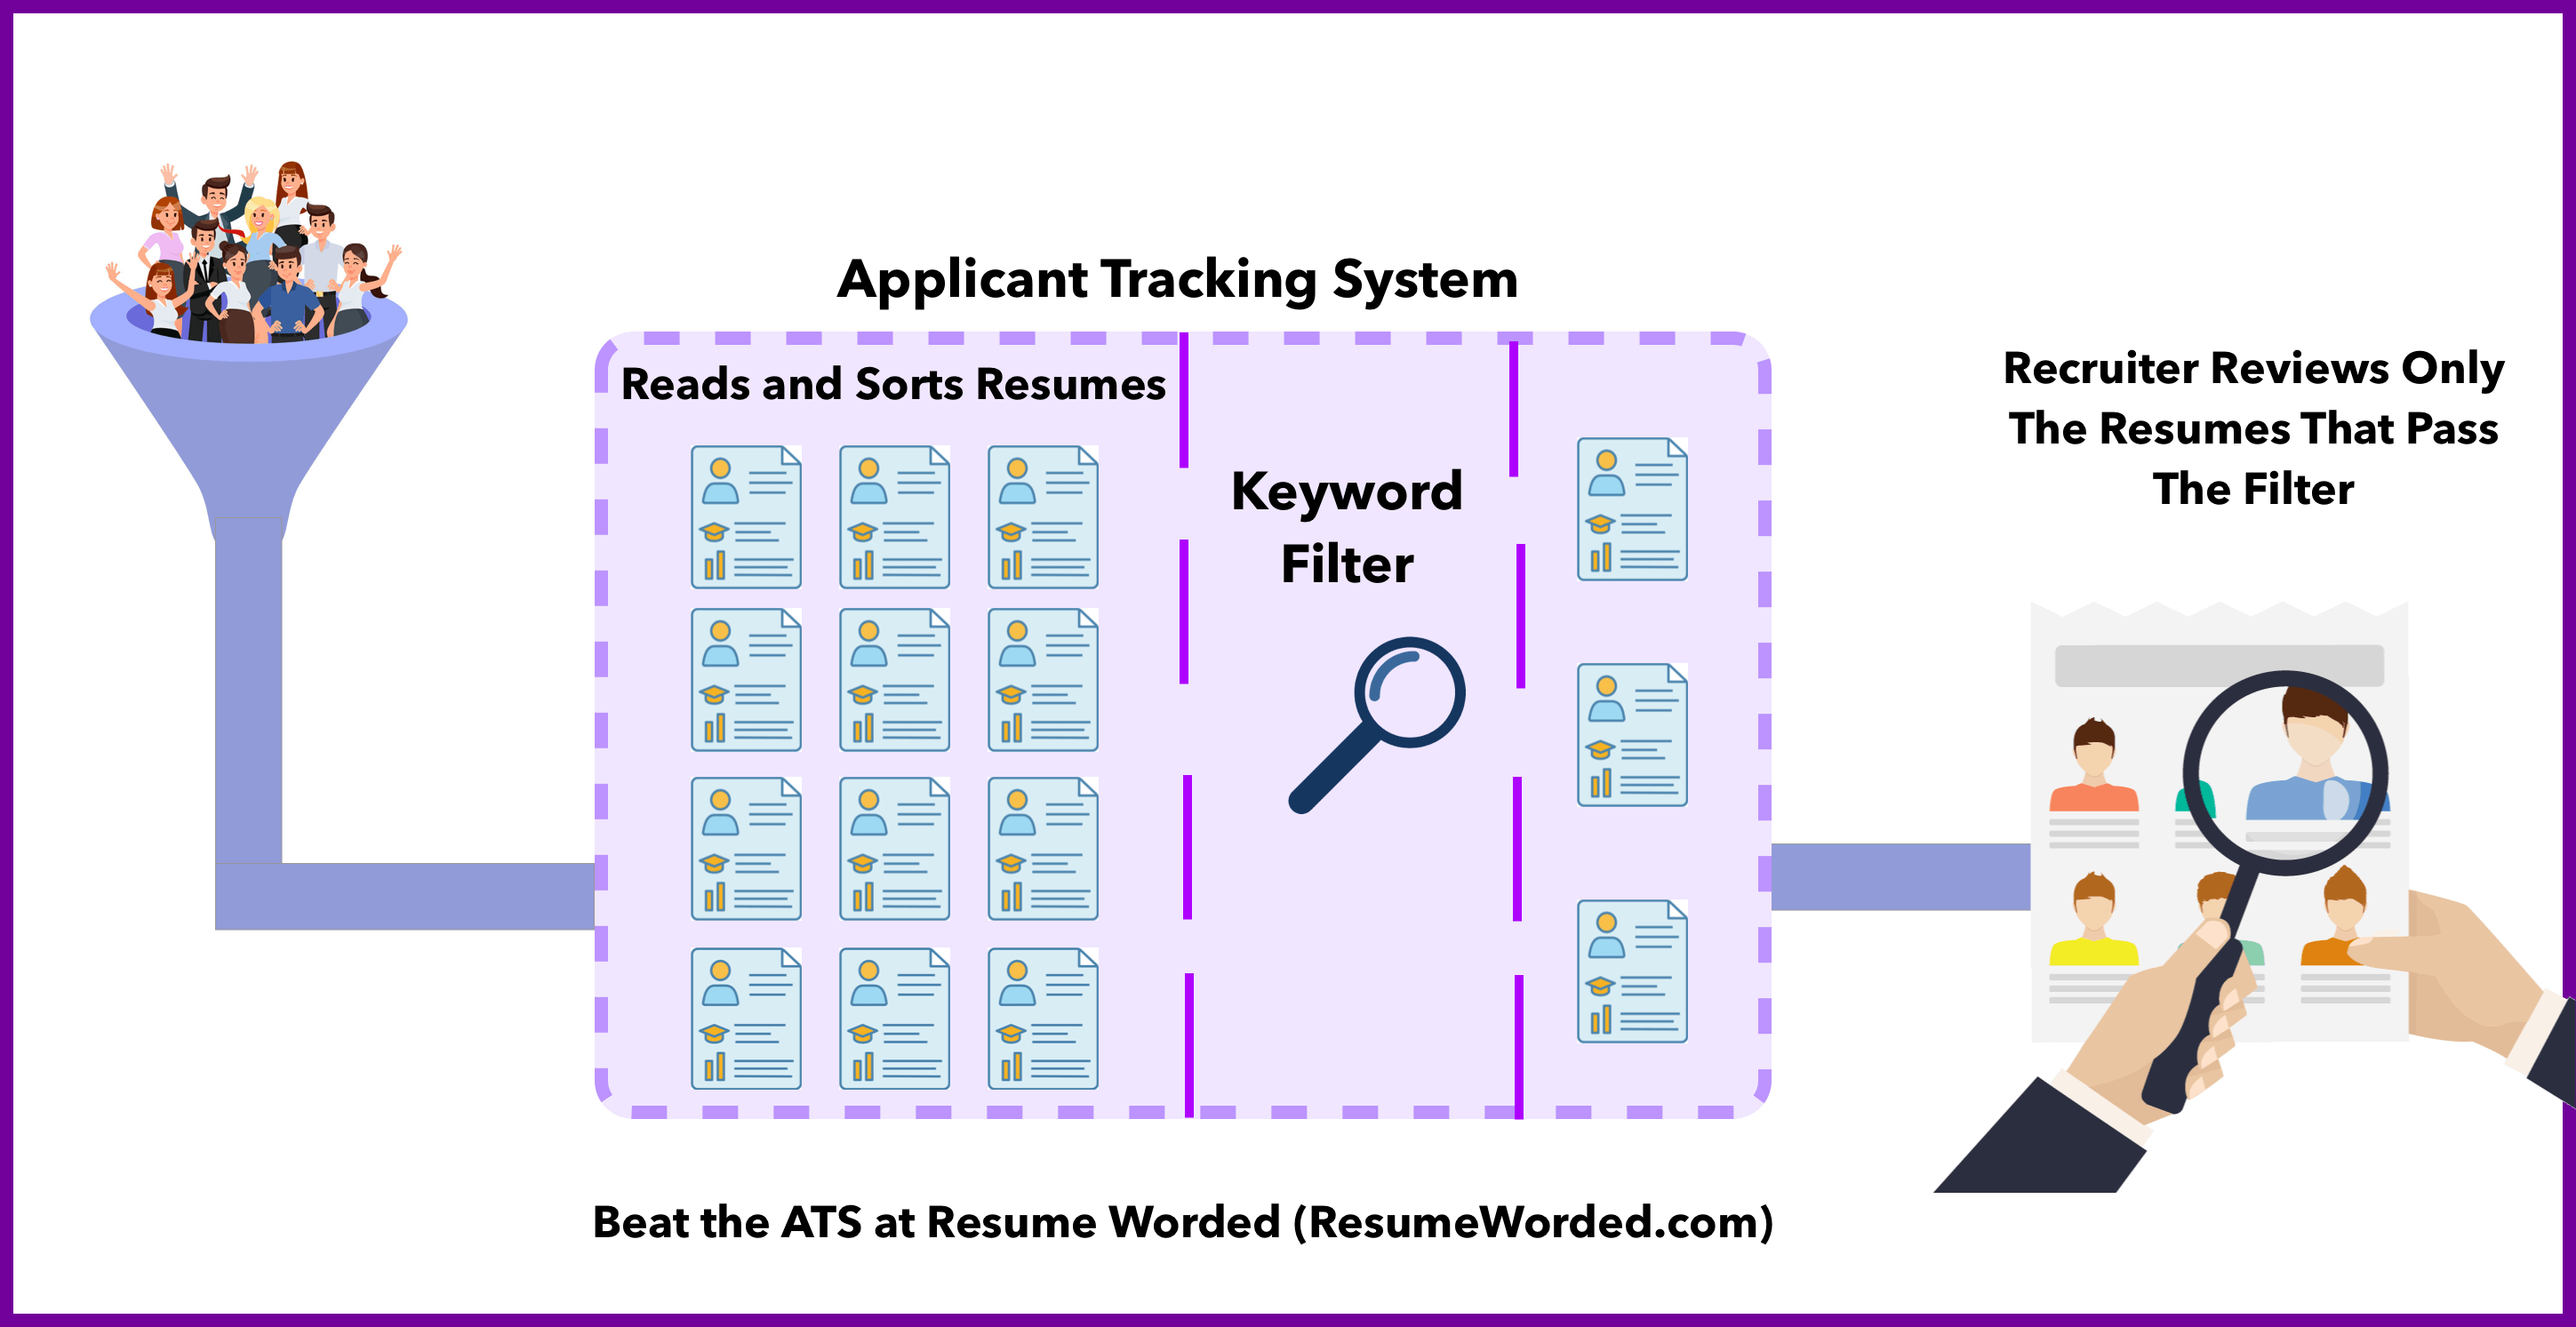 How an Applicant Tracking System works and filters applicants